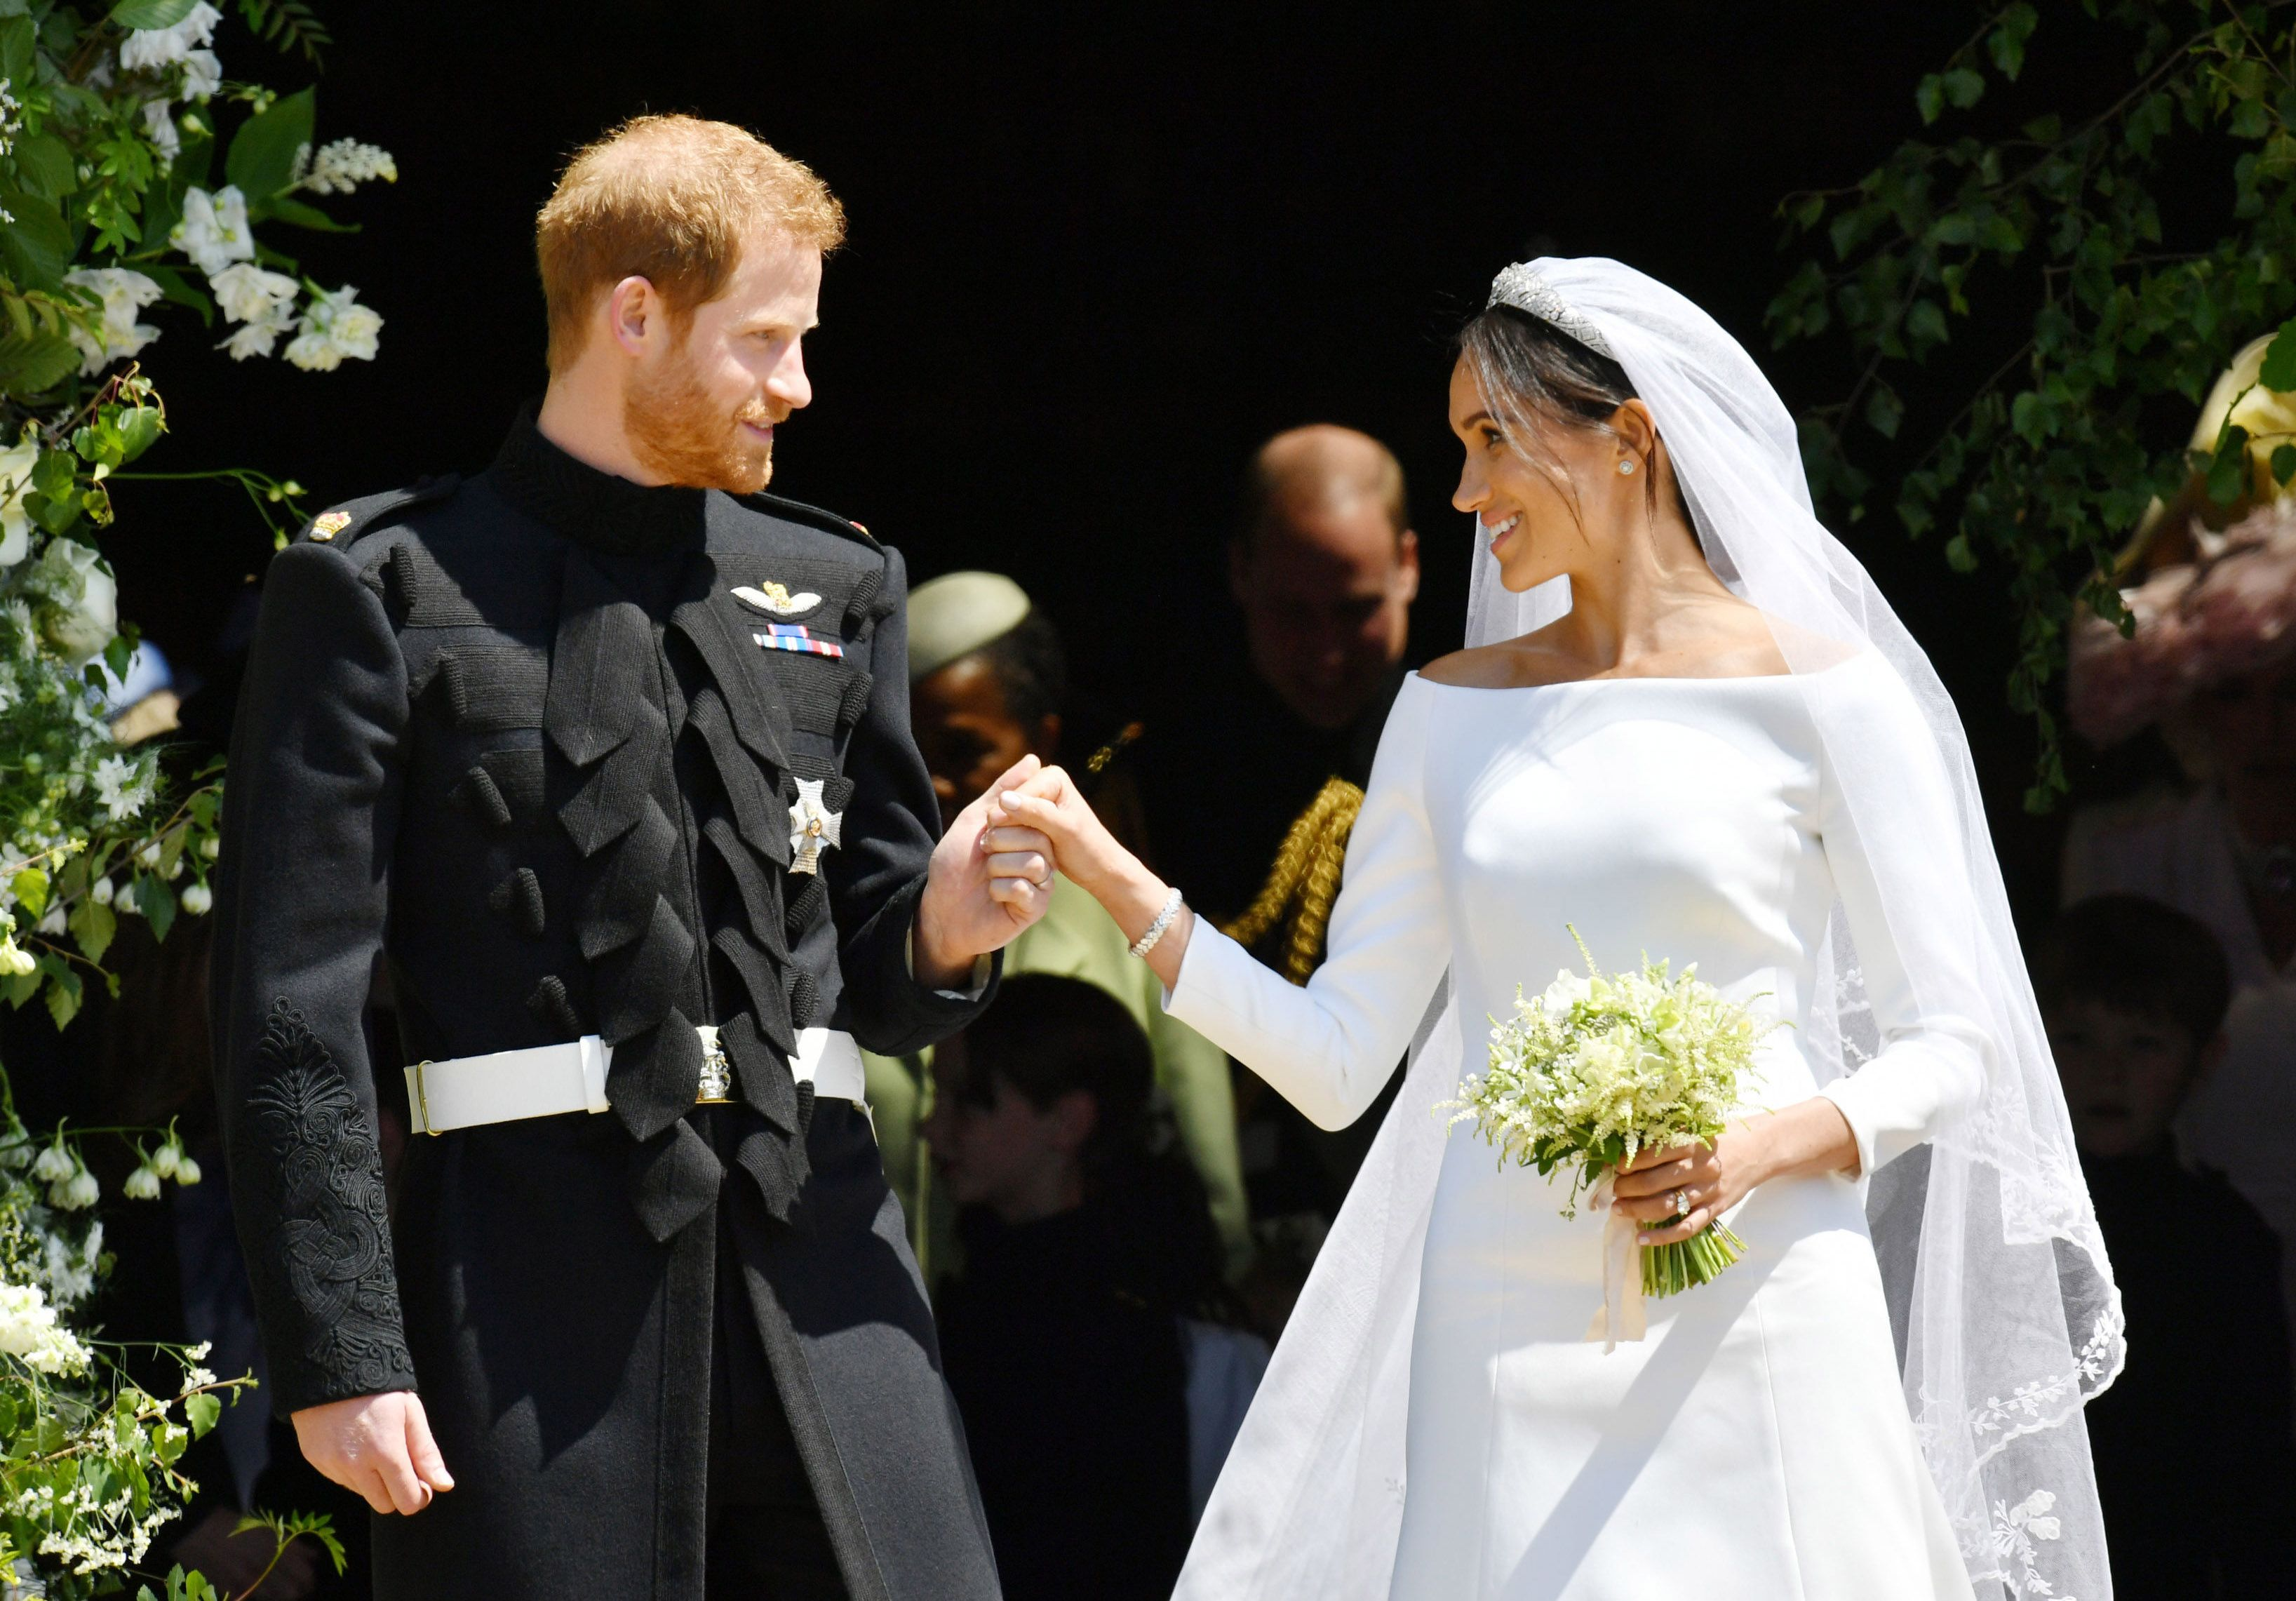 hbz-prince-harry-meghan-markle-wedding-gettyimages-960067858-1526830348